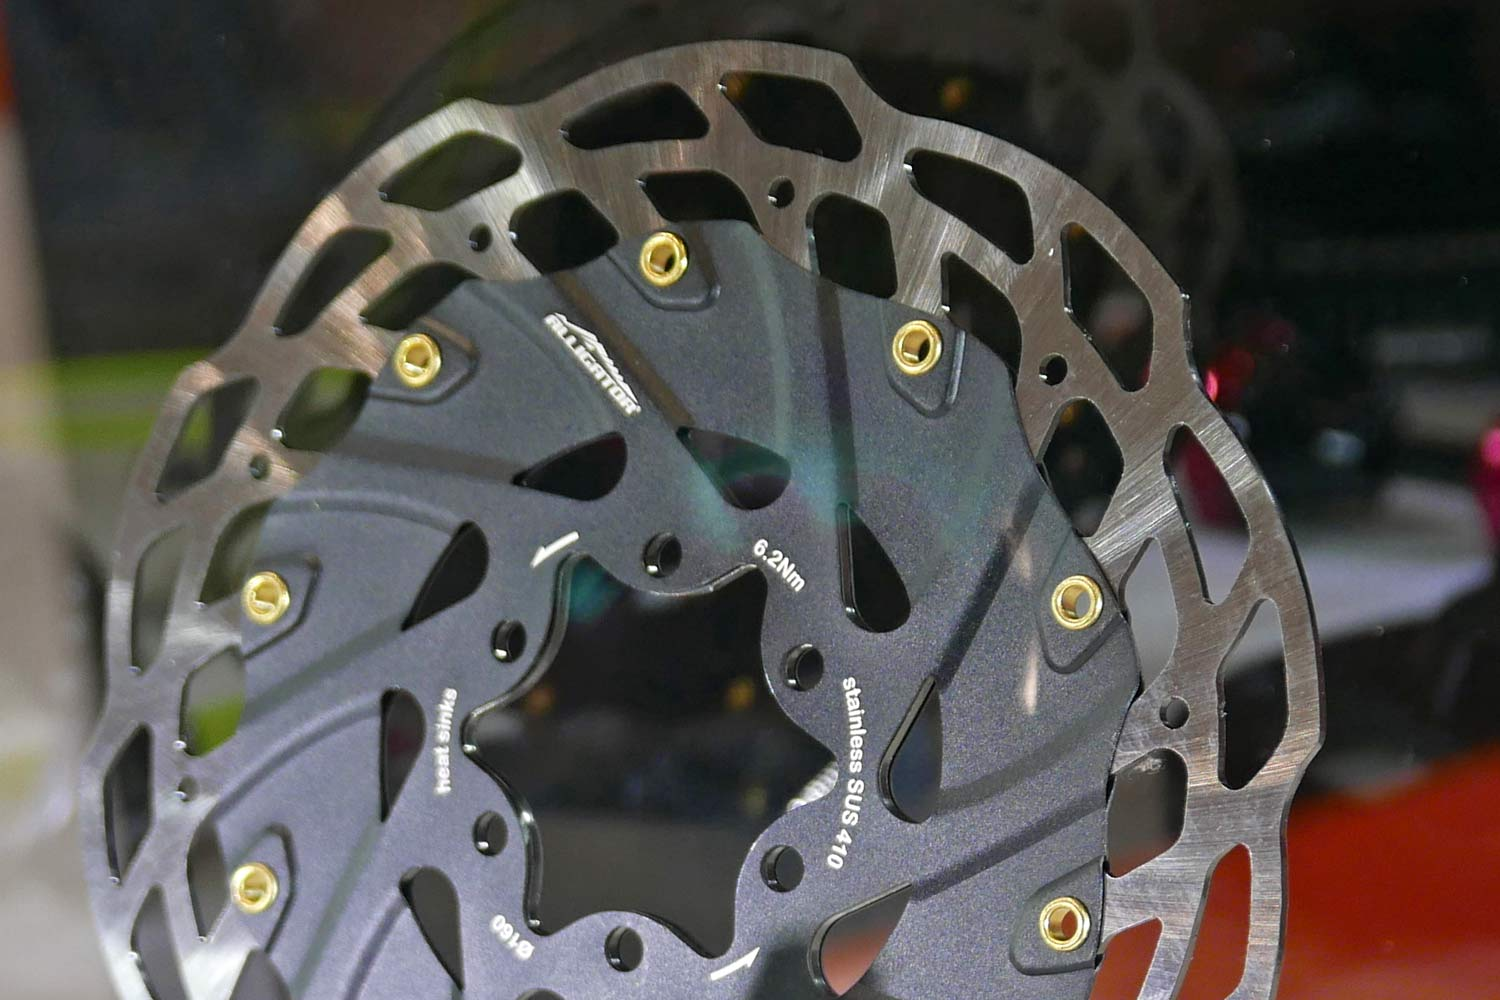 Alligator Heat Sink rotor. stainless steel disc brake rotor with aluminum heat-sink cover sandwich